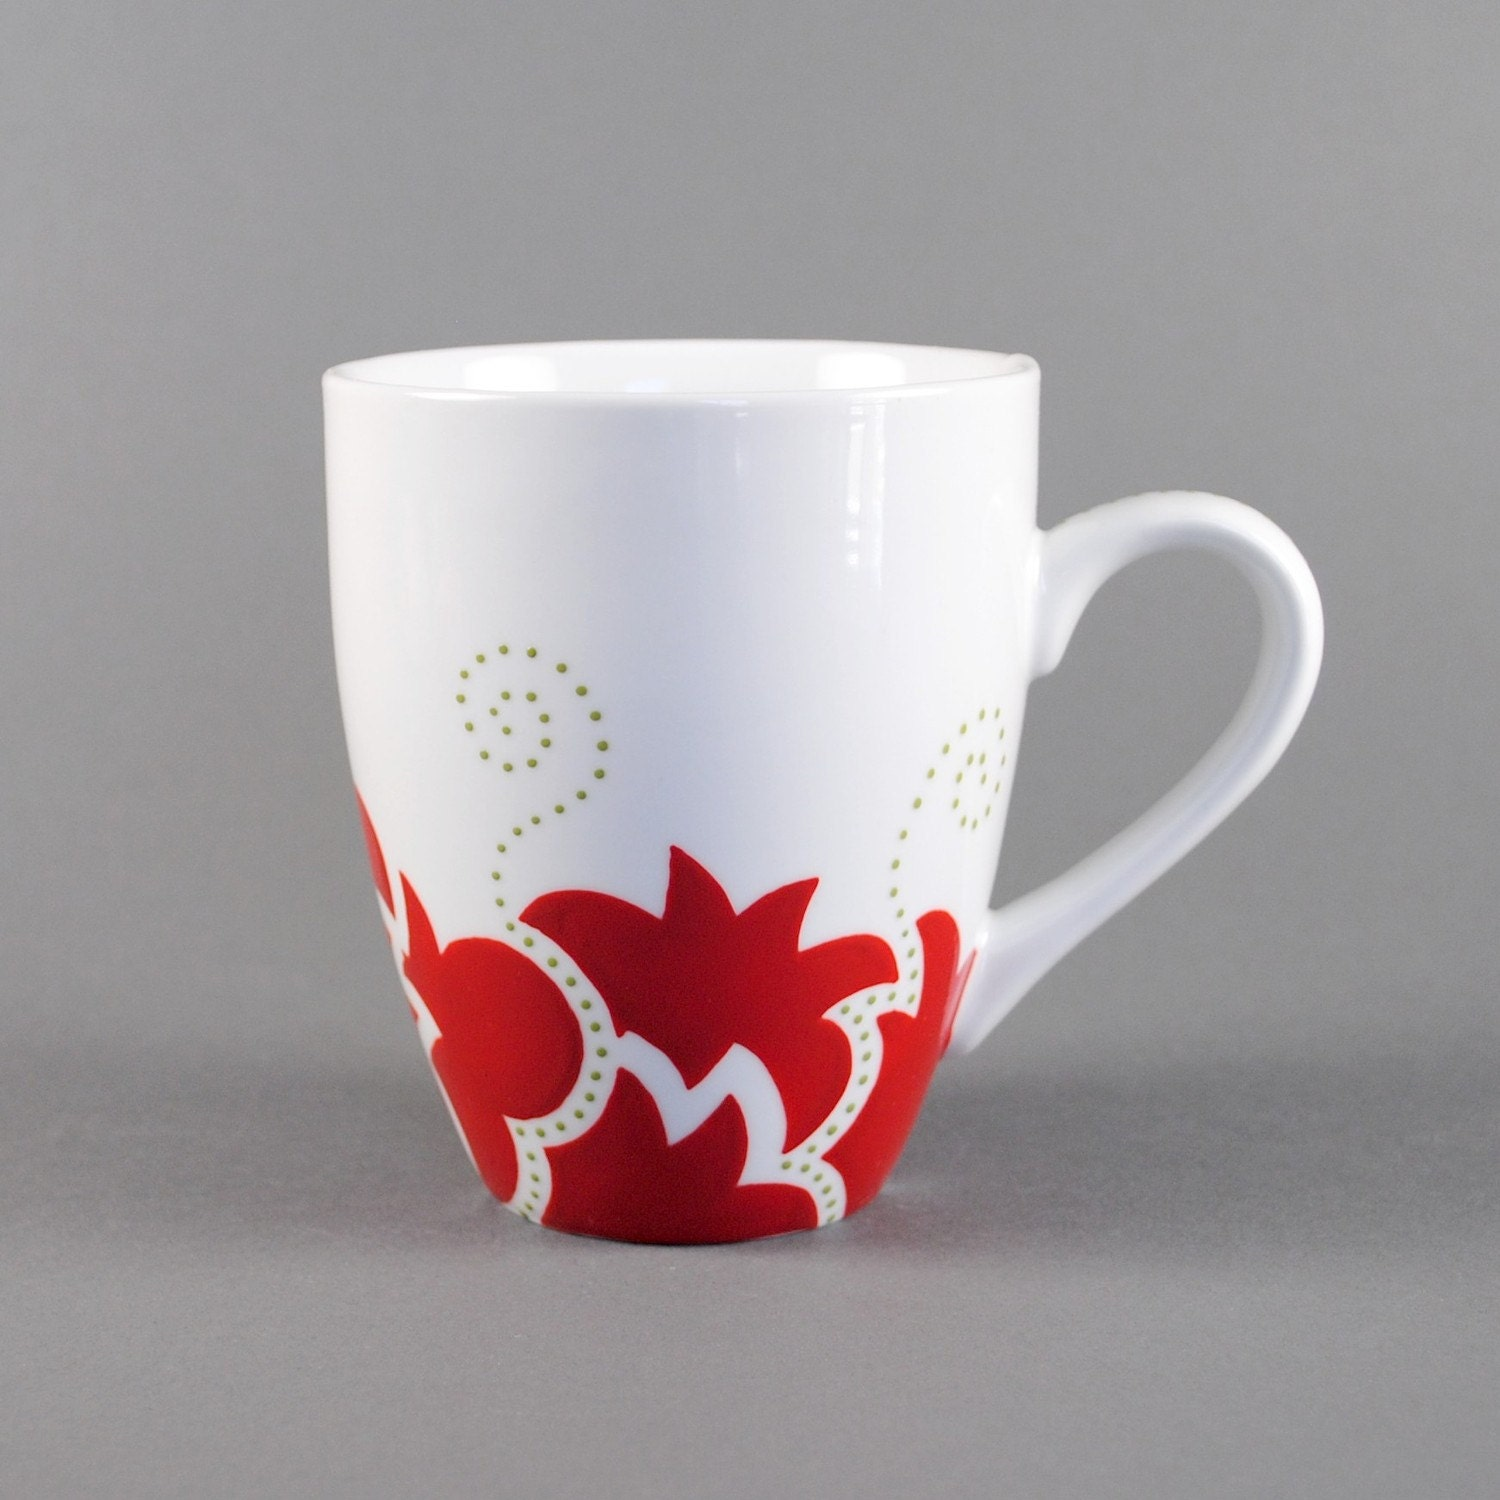 mug designs coffee mug decoration ideas coffee mug design your own mug